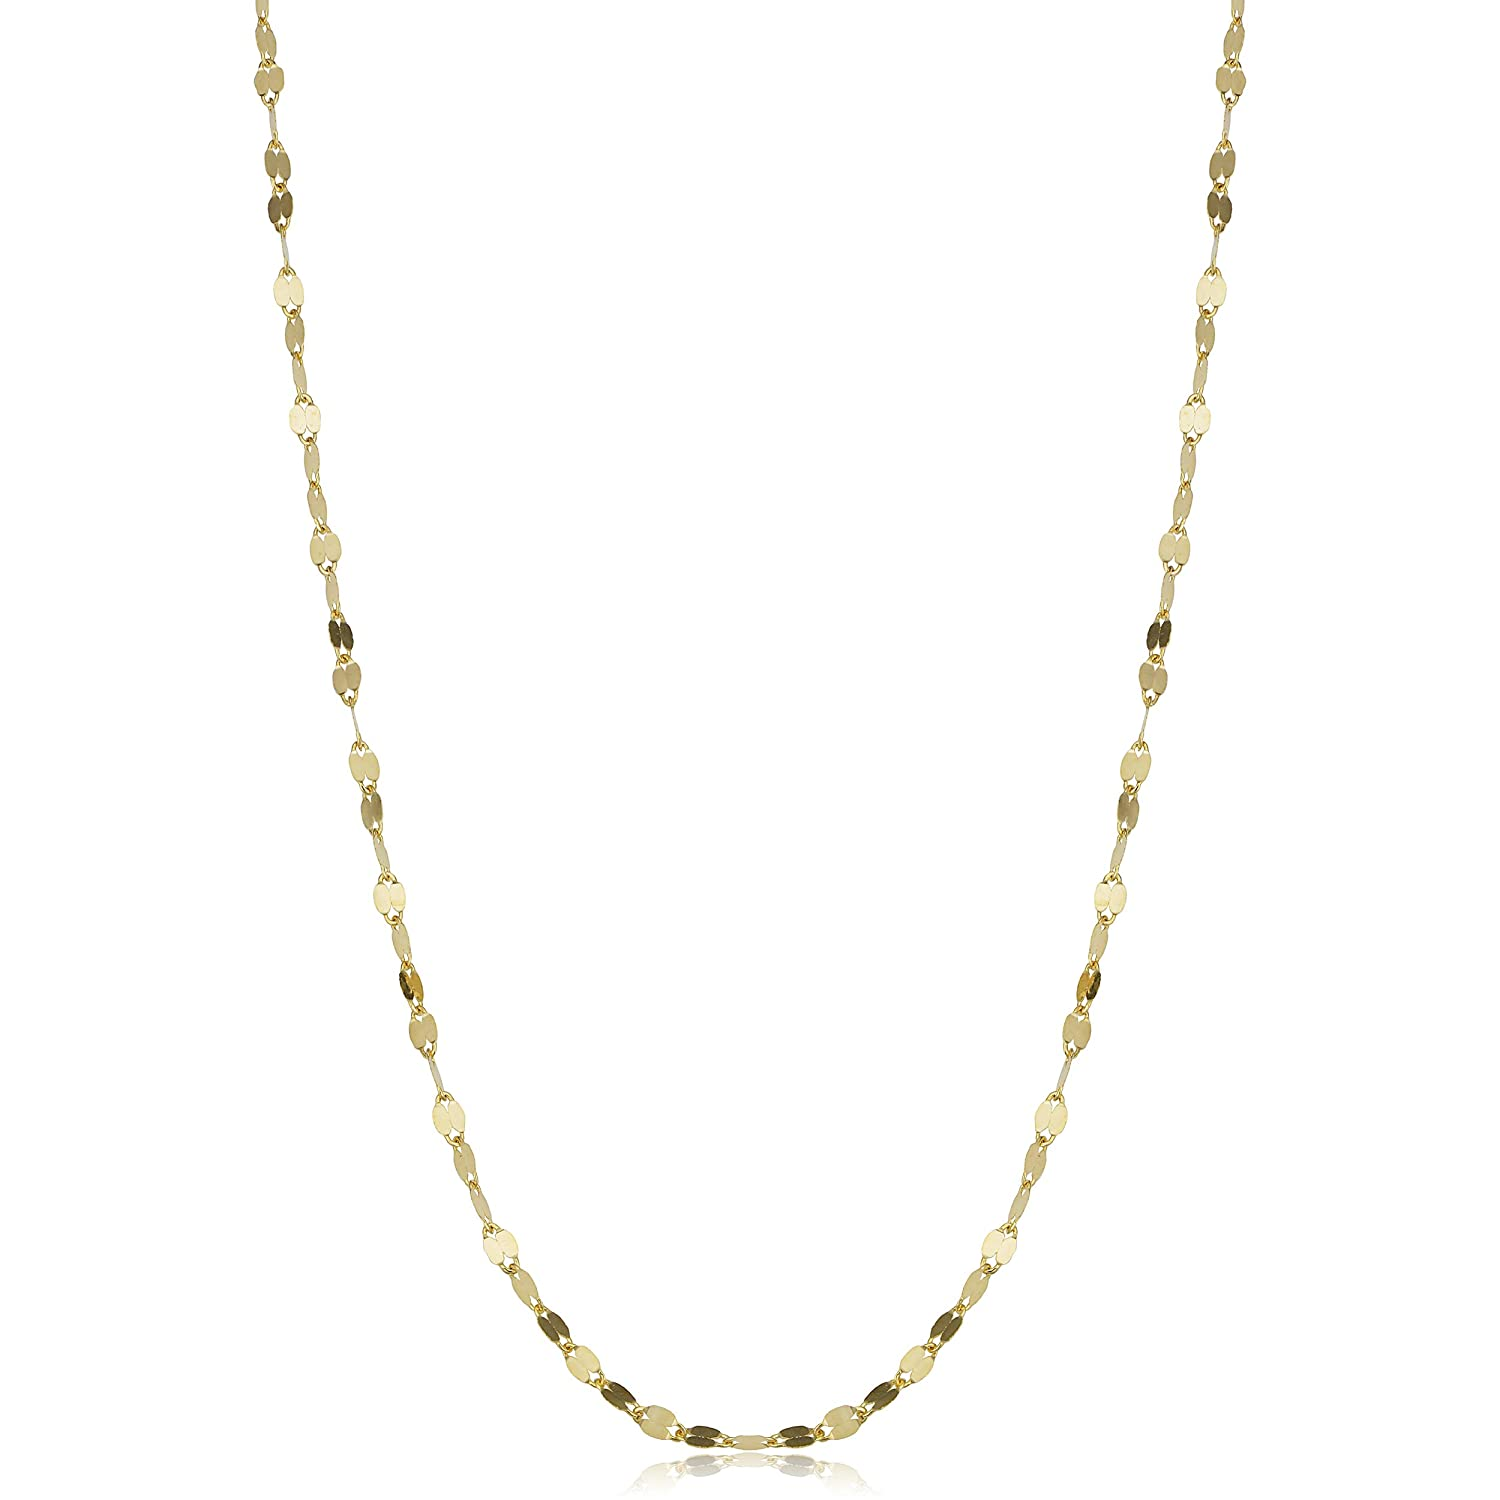 c852eafdedb Amazon.com: Kooljewelry 14k Solid Yellow Gold Flat Link Mirror Chain  Necklace (1.9mm, 24 inch): Chain Necklaces: Jewelry